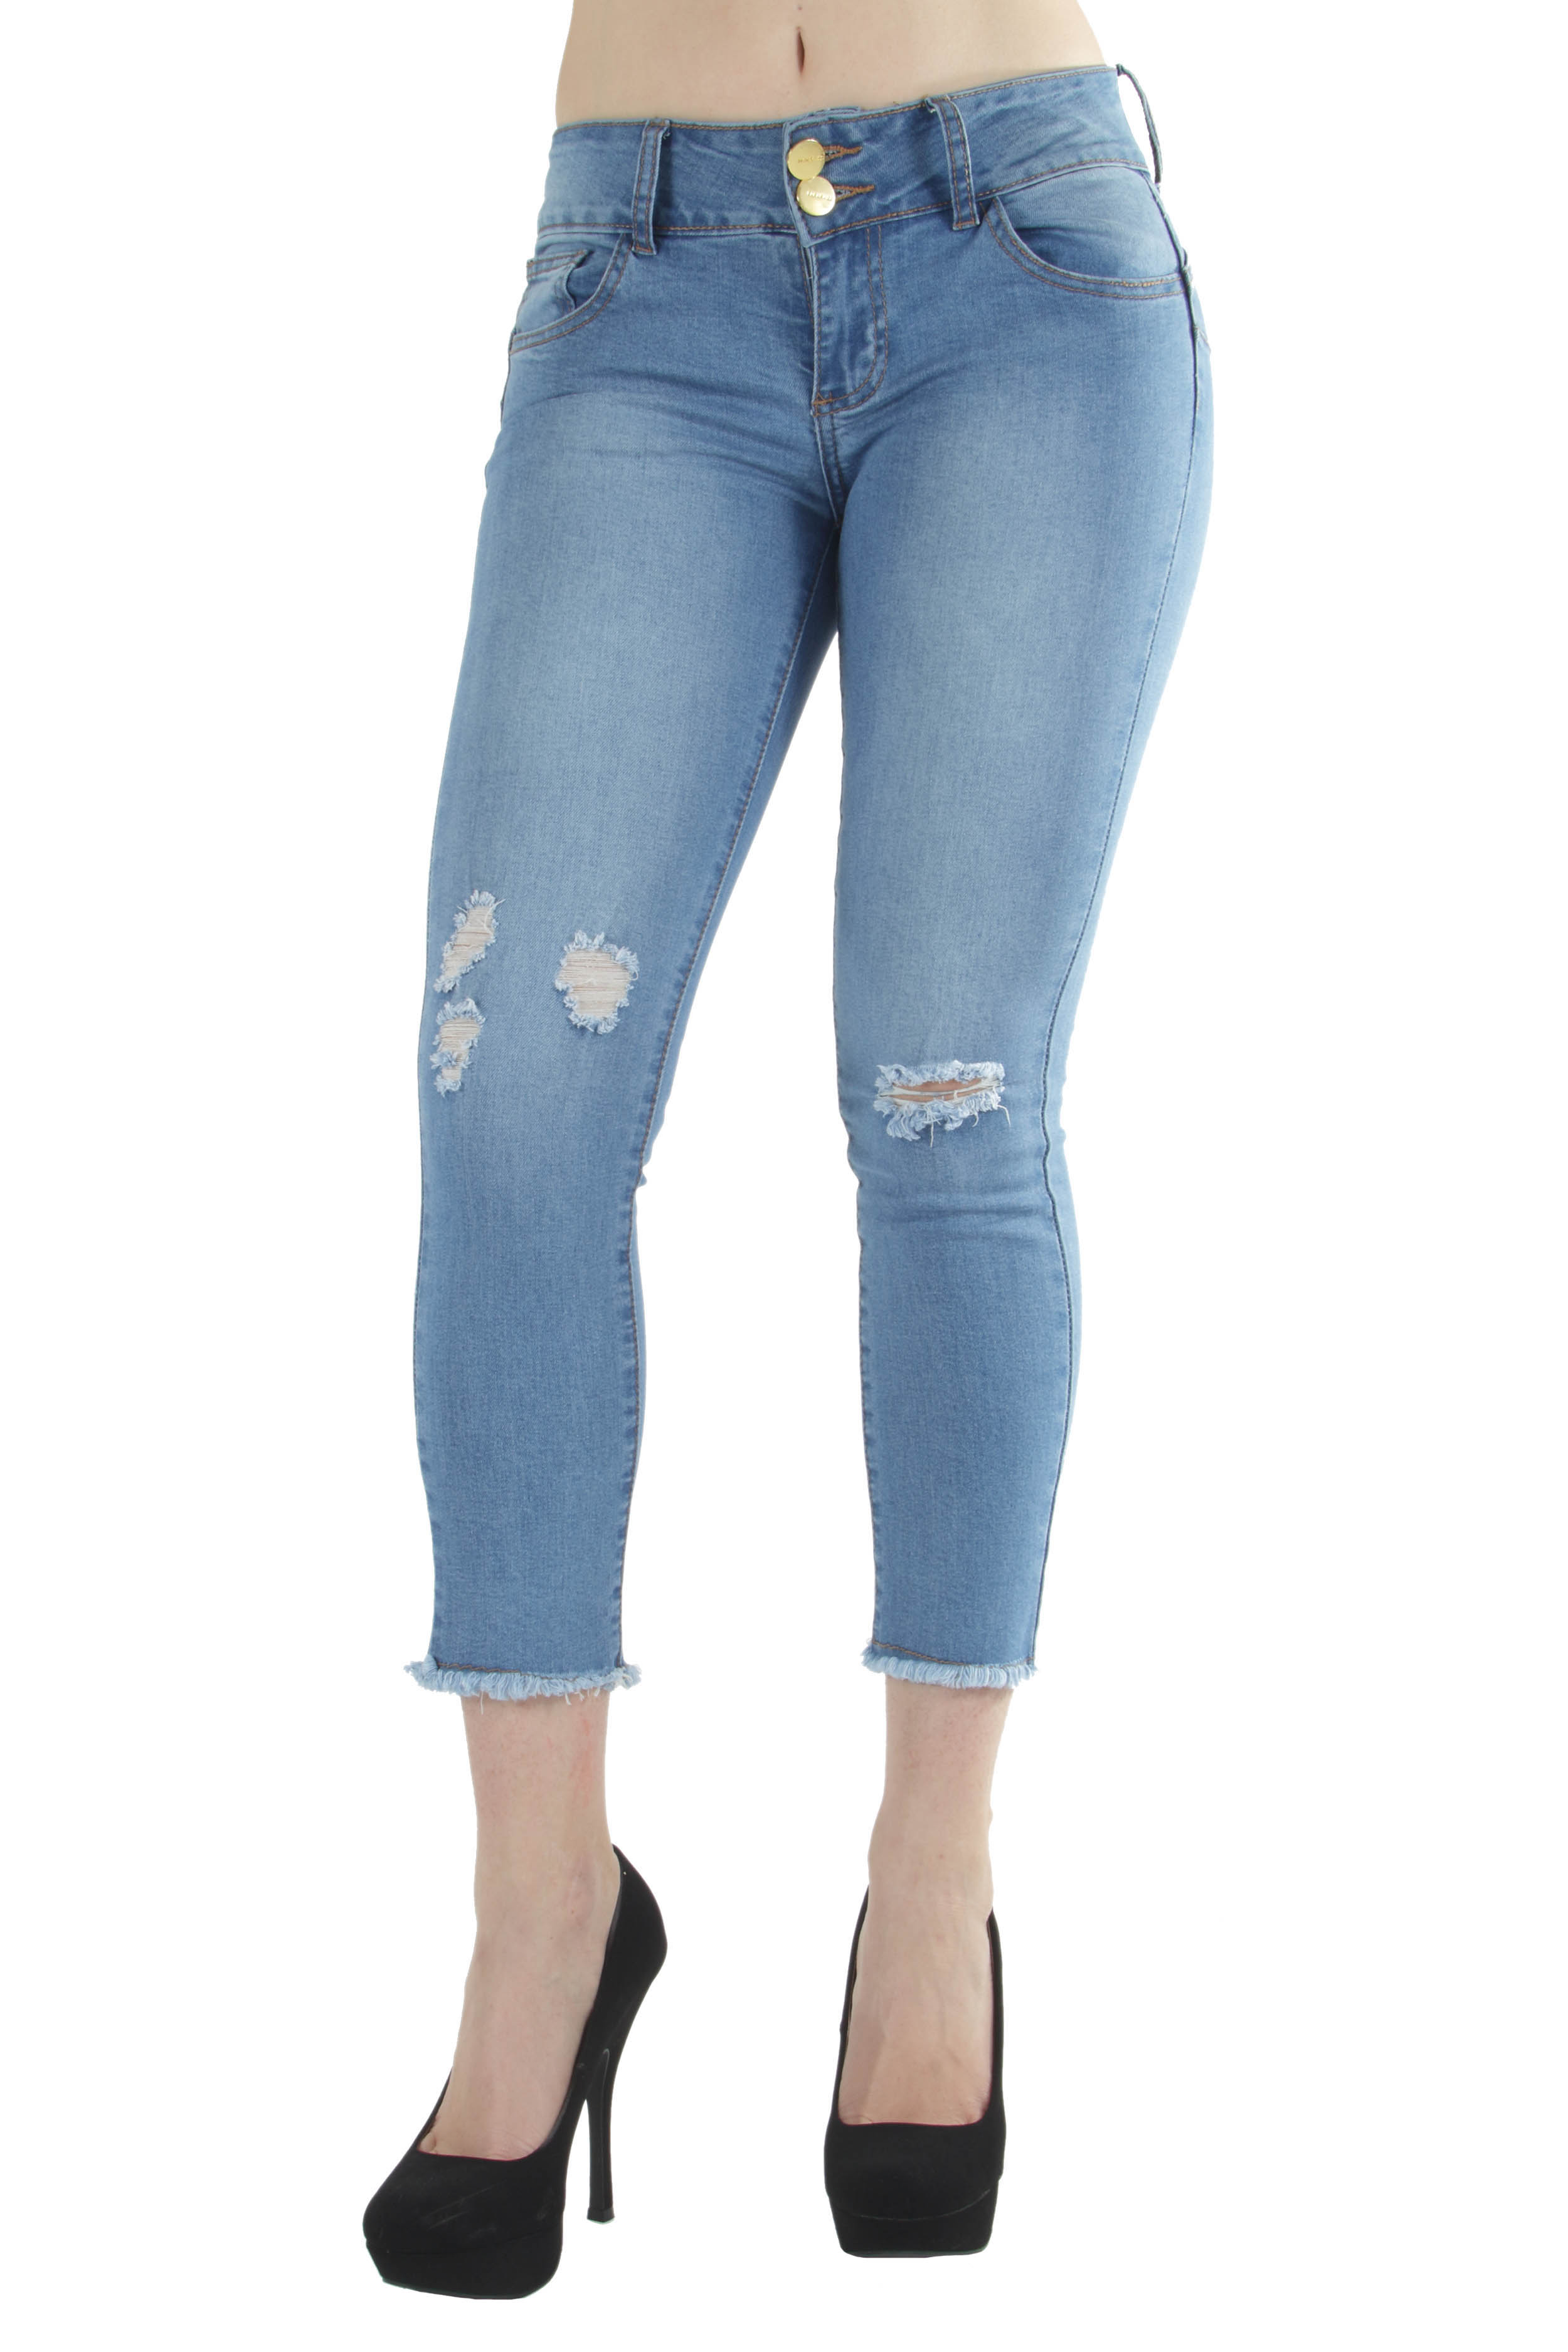 Butt Lifting Premium Skinny Jeans Destroyed Rips above ankle